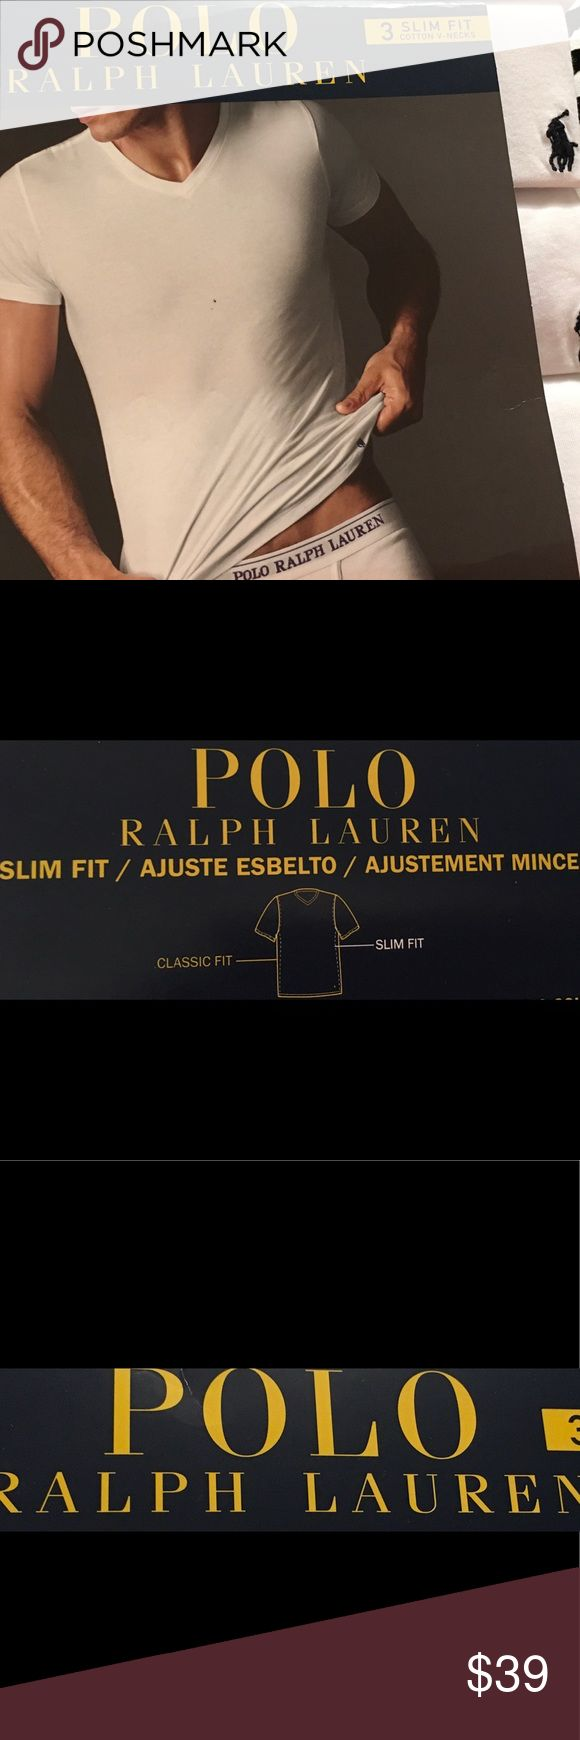 30% off Bundles Polo Ralph Lauren Slim Fit V-Necks NWTS POLO by Ralph Lauren 3 Slim Fit Cotton V-Necks. These come still in the package. Polo by Ralph Lauren Underwear & Socks Undershirts